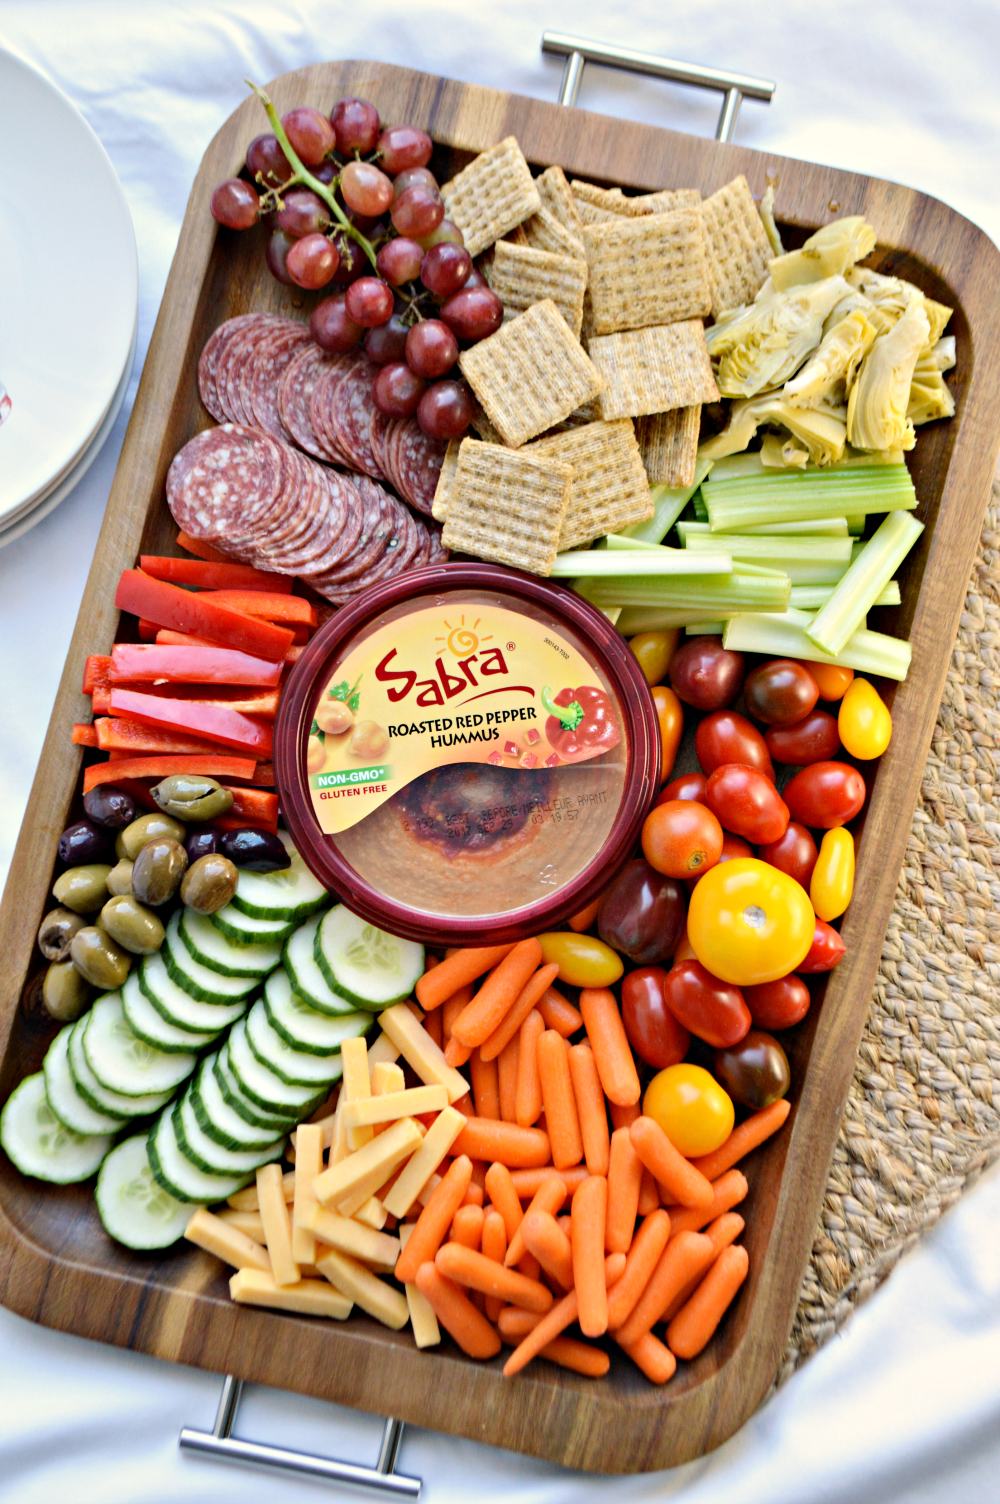 Sometimes simple is best, especially when it turns out looking like you put a lot of time and effort into it. A simple antipasto hummus platter is perfect for a light meal or entertaining.